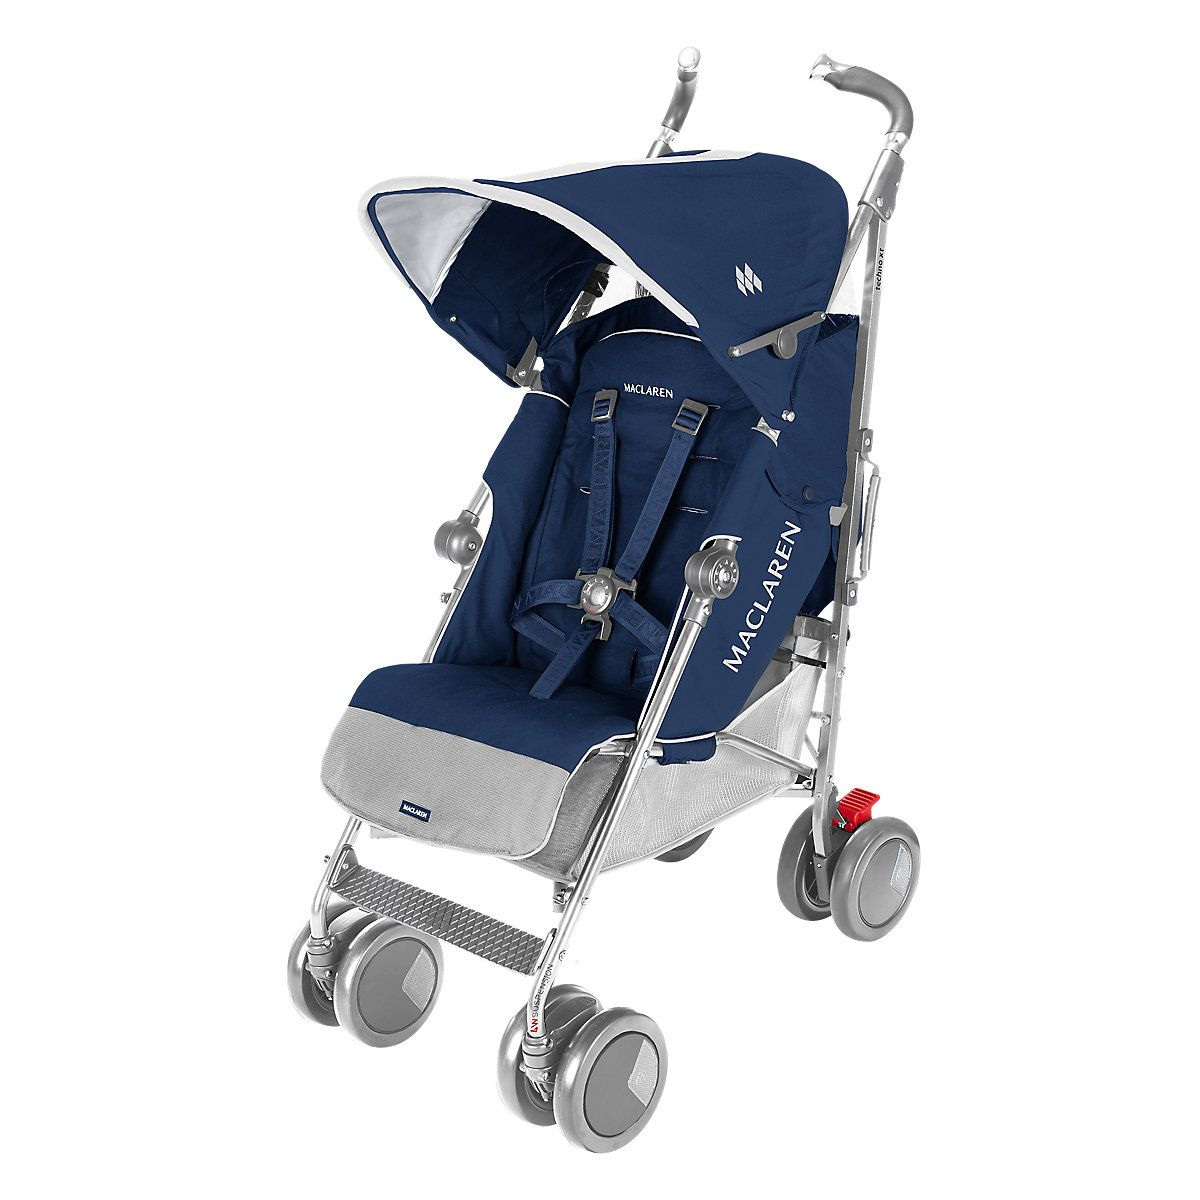 M WSE07012 Umbrella stroller, Stroller, Best